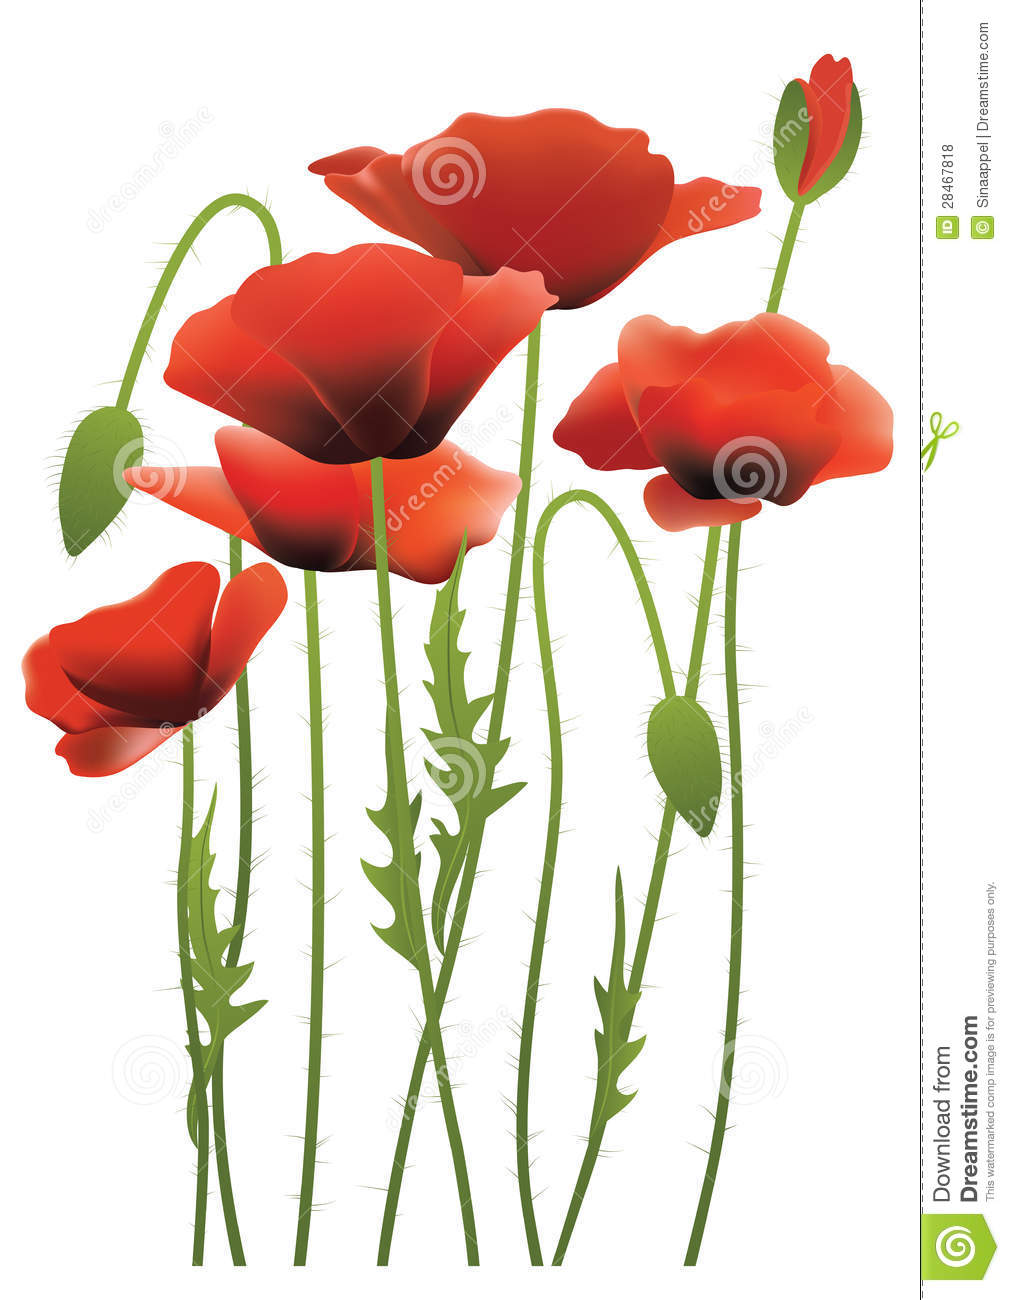 Red poppy flowers vector illustration stock vector illustration royalty free stock photo mightylinksfo Images